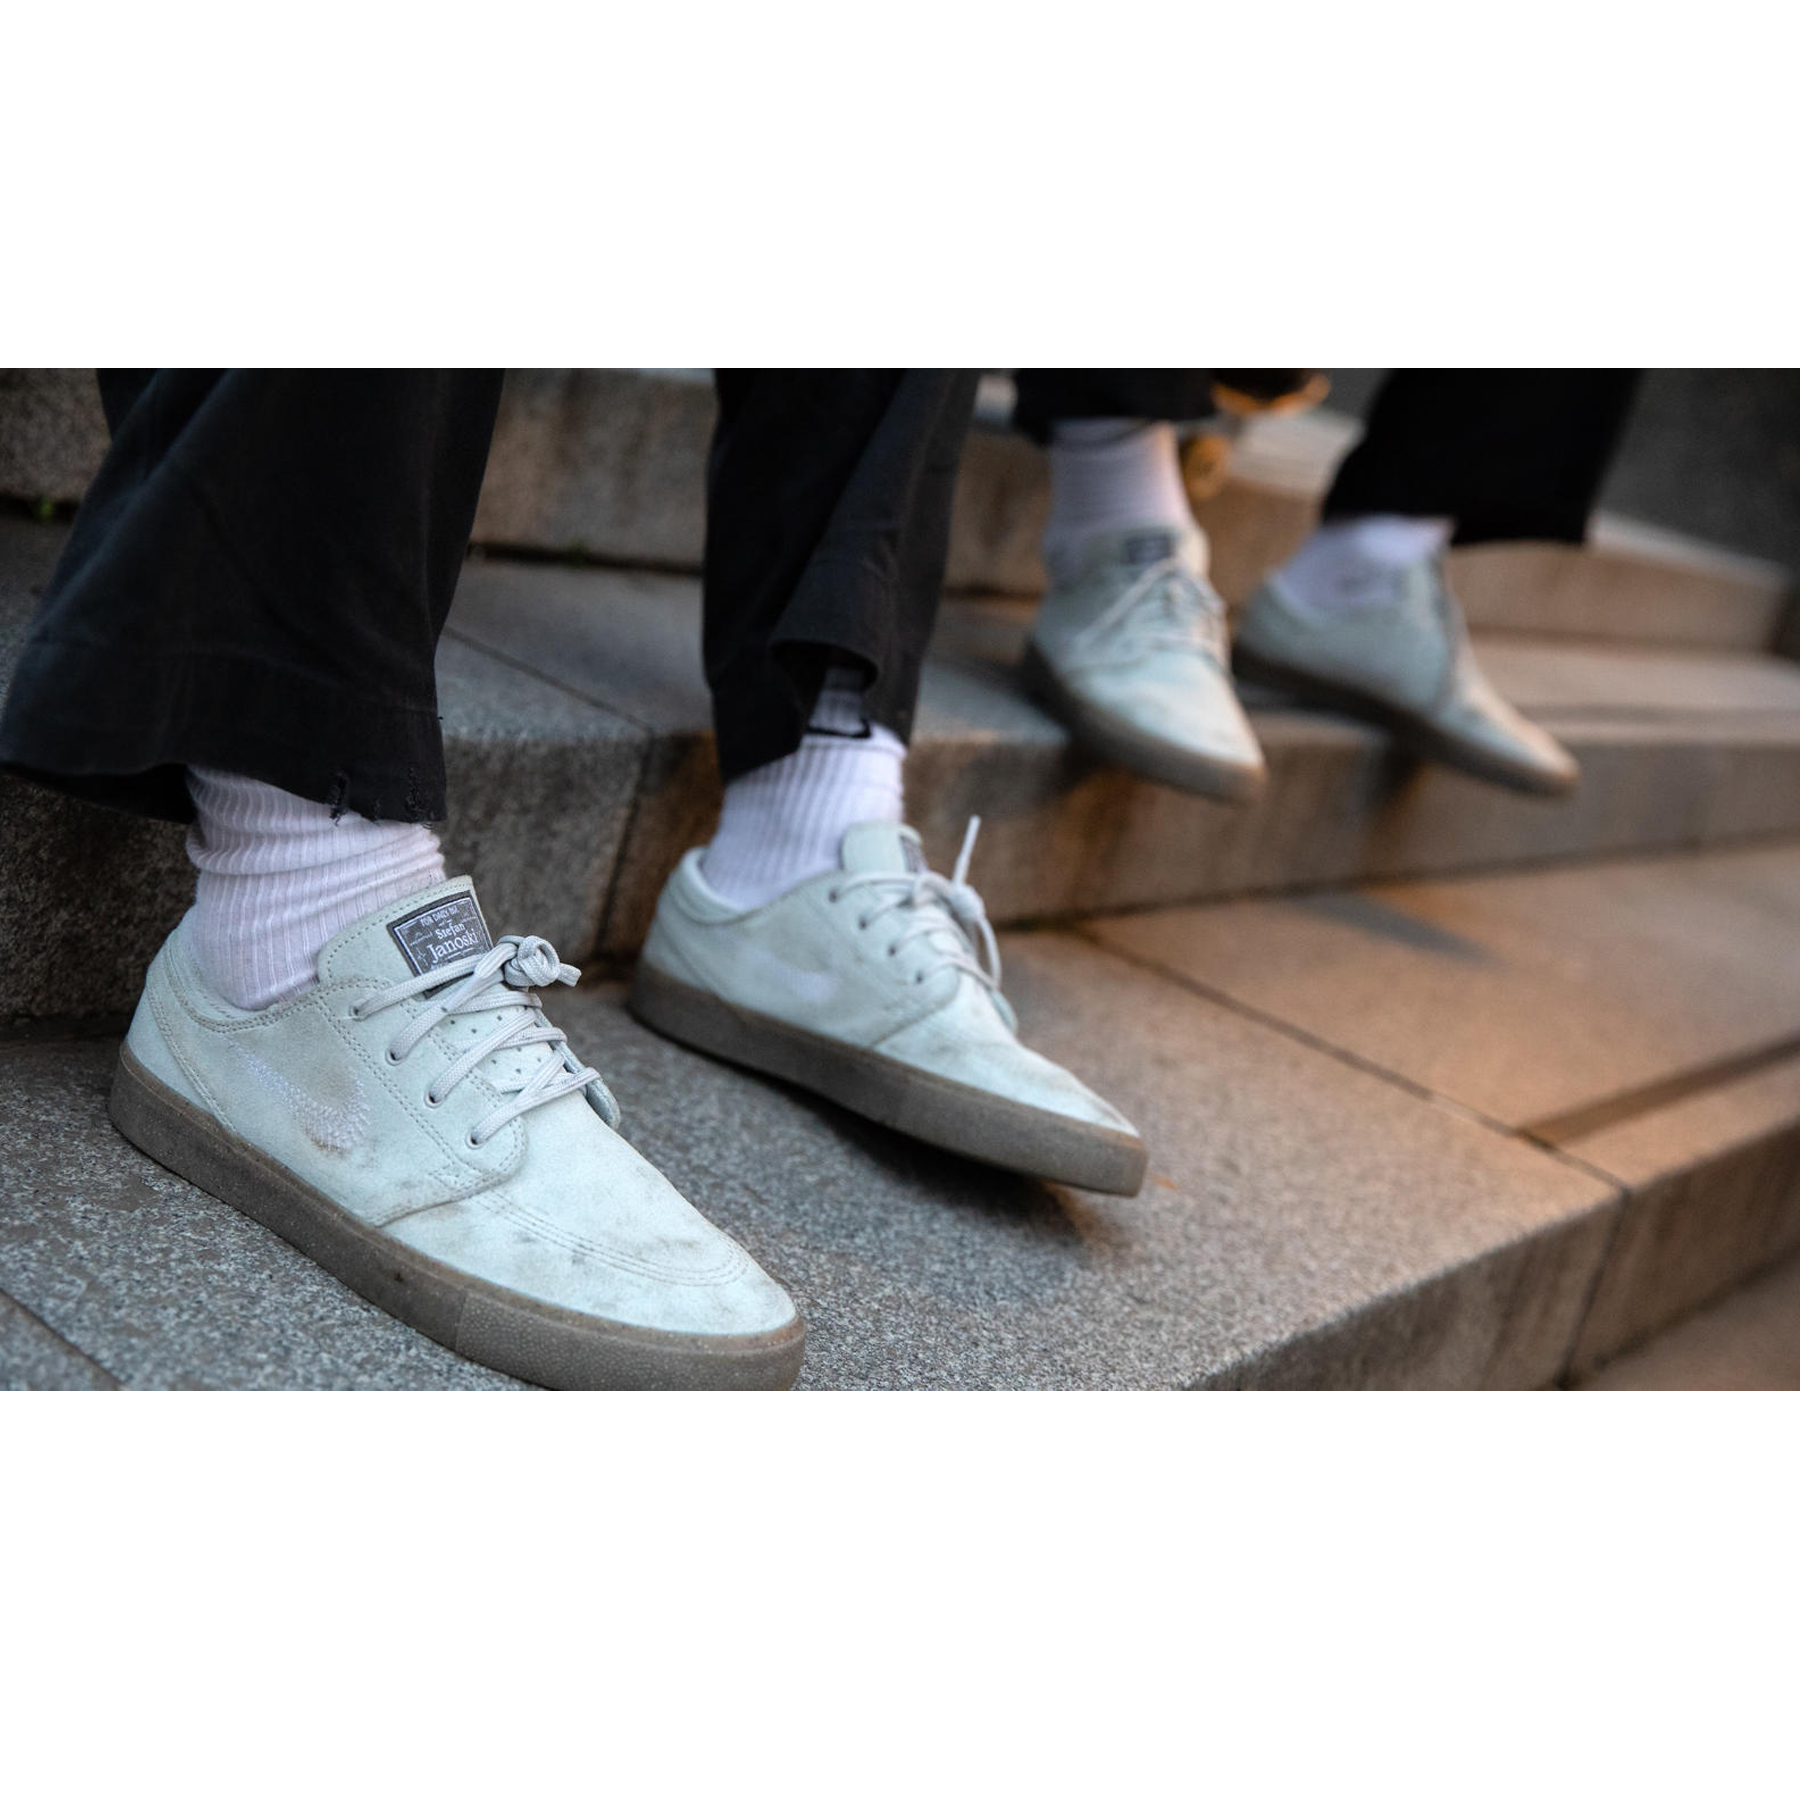 Nike SB Zoom Janoski FL RM Shoes - Free Delivery options on All ...